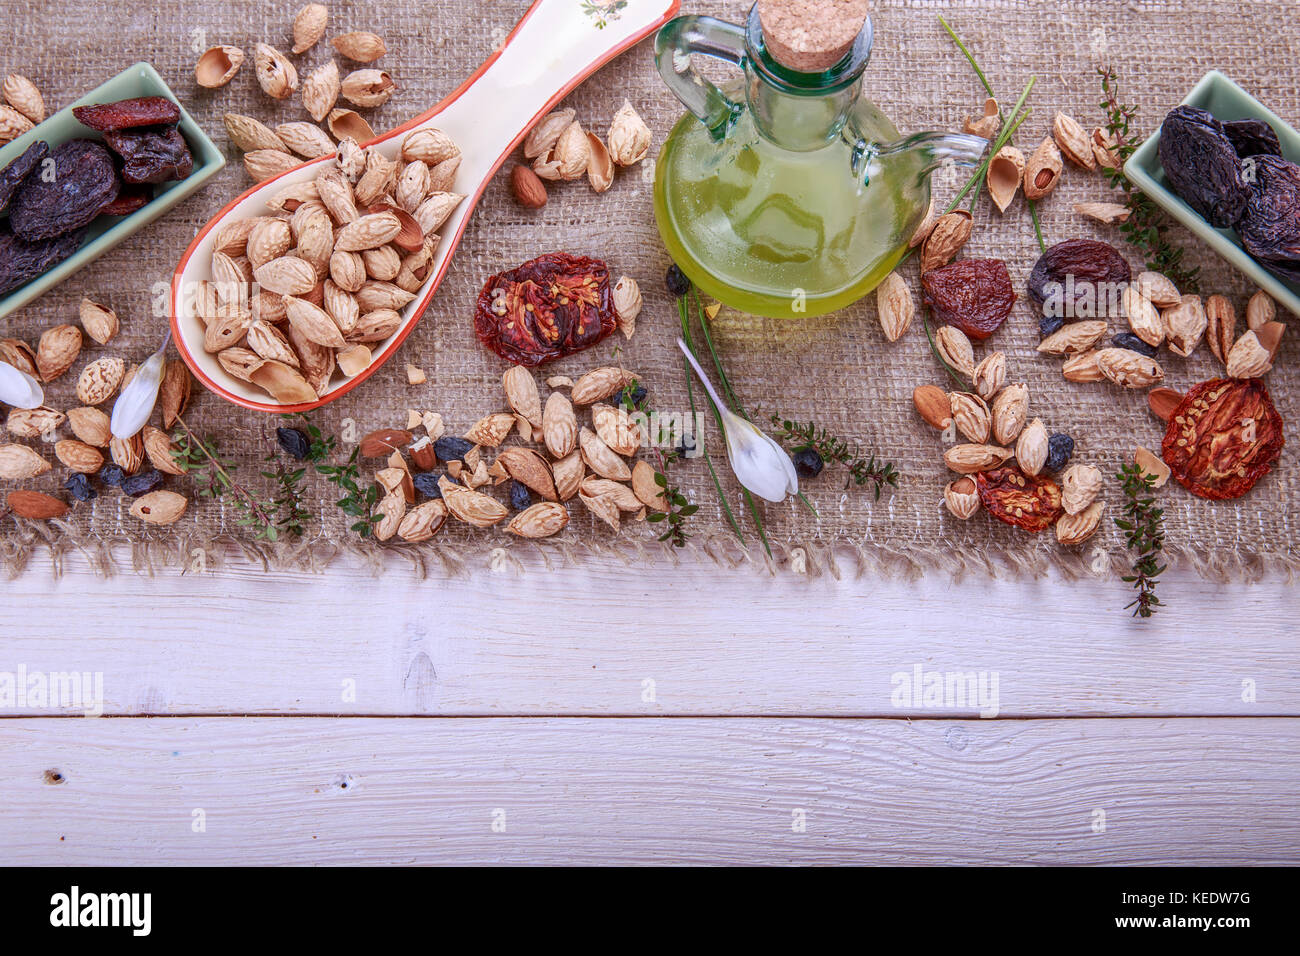 Prunes, dried apricots, raisins, almonds, dried tomatoes - handmade. Dried fruits, vegetables, nuts and butter. - Stock Image